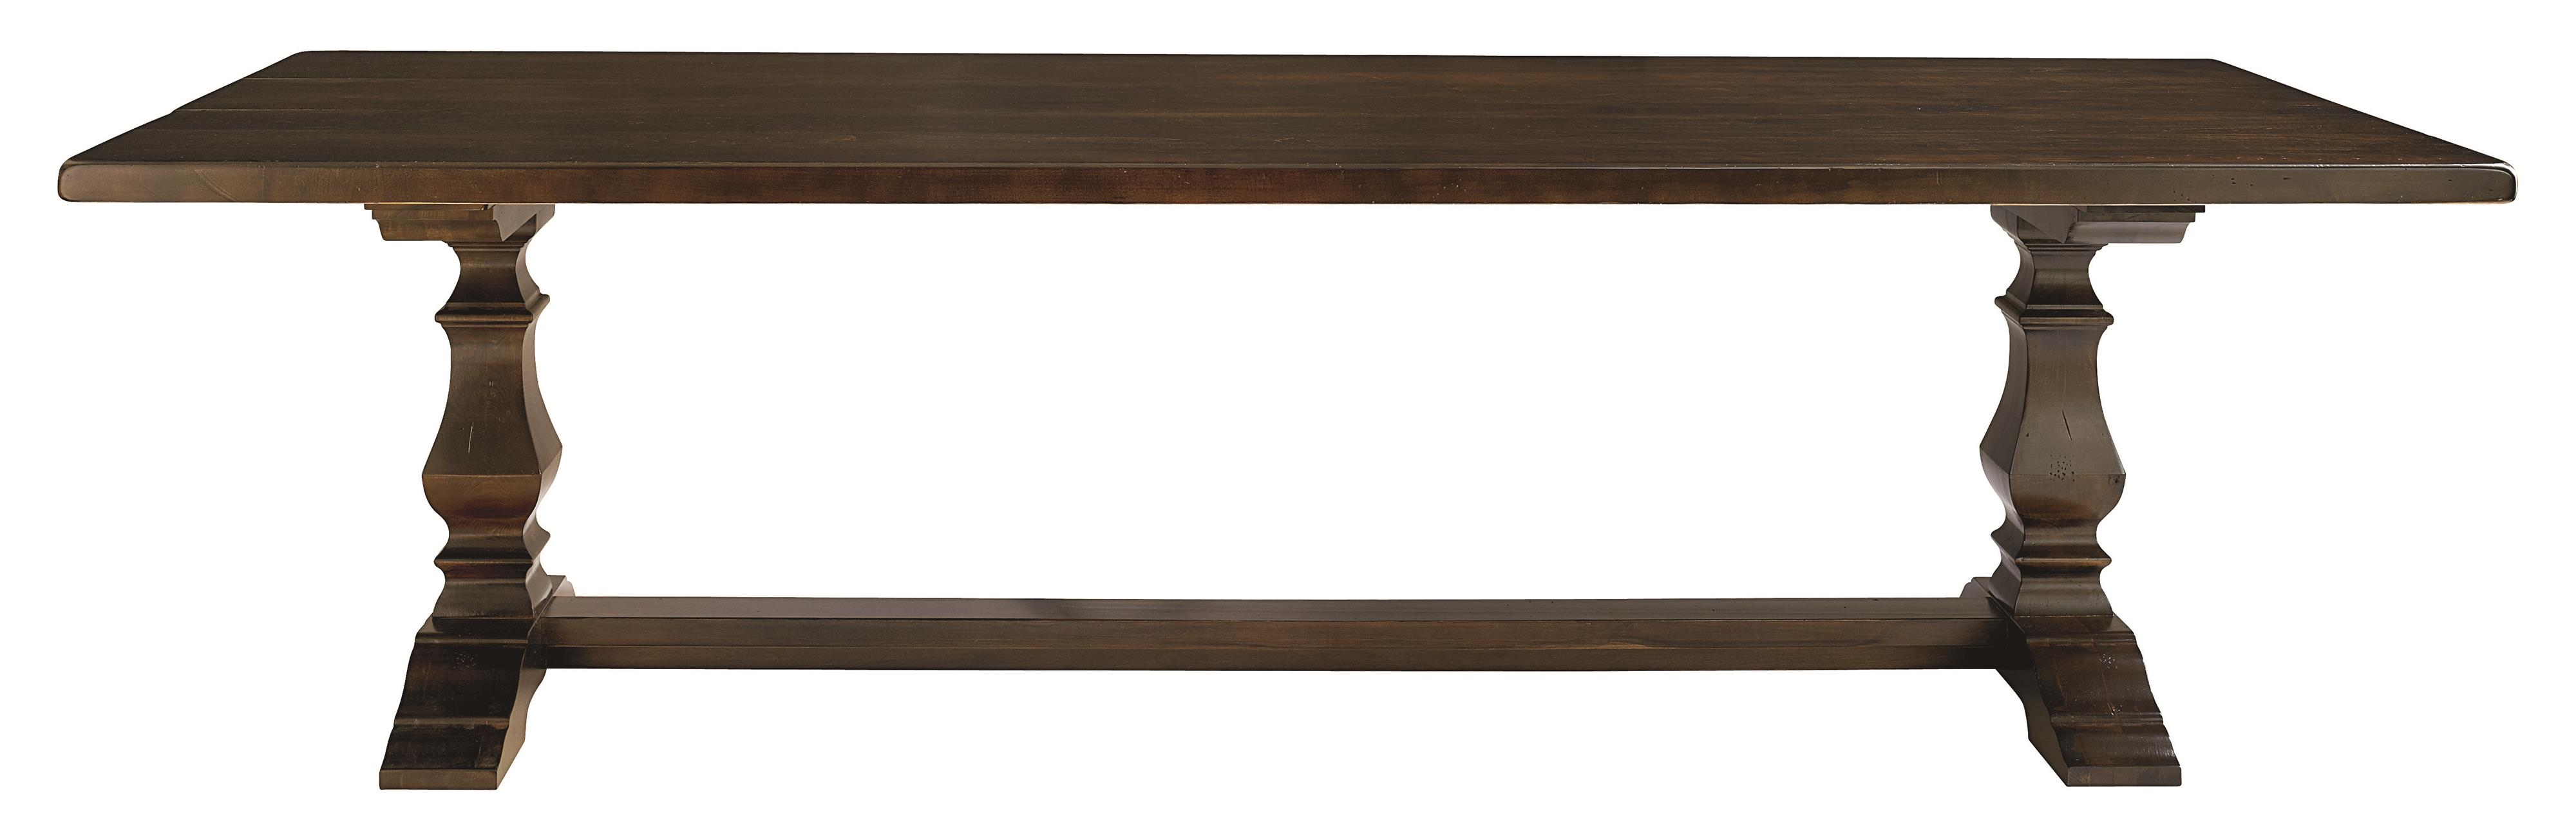 """Bench Made Maple 108"""" Rectangular Table by Bassett at Williams & Kay"""